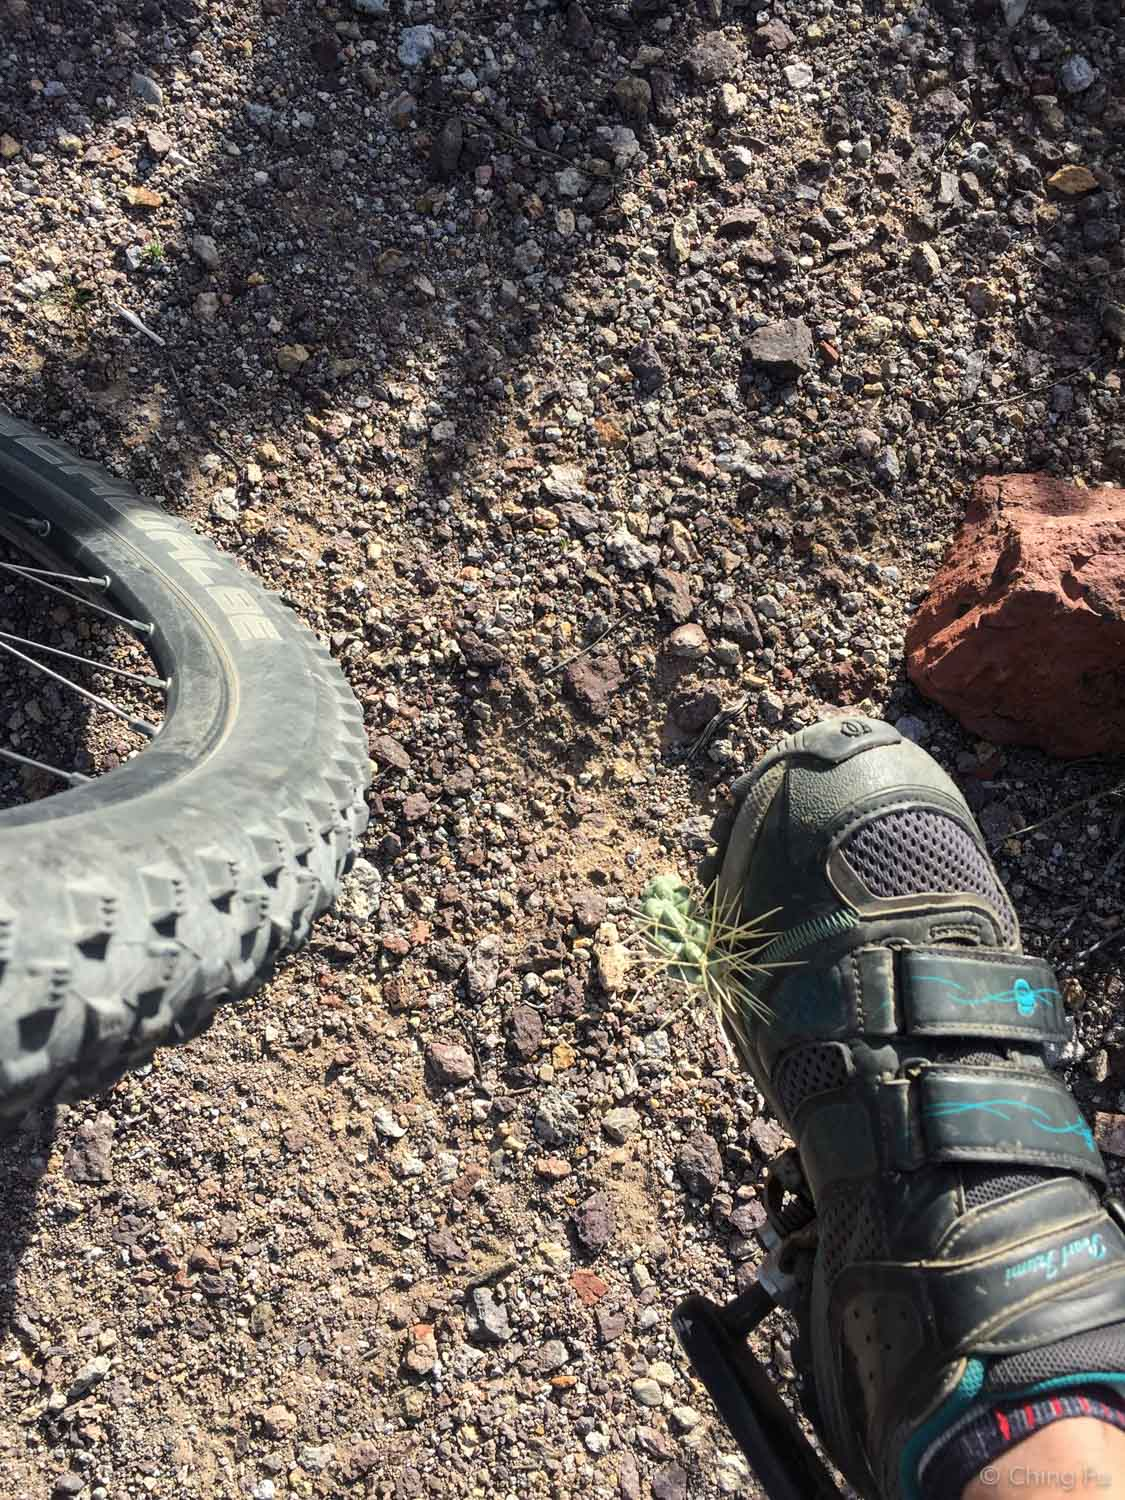 I kicked a piece of cholla off the trail so Tyki wouldn't accidentally run over it but instead it got stuck to my shoe. Lesson: don't kick them, they will go through shoes all of kinds!